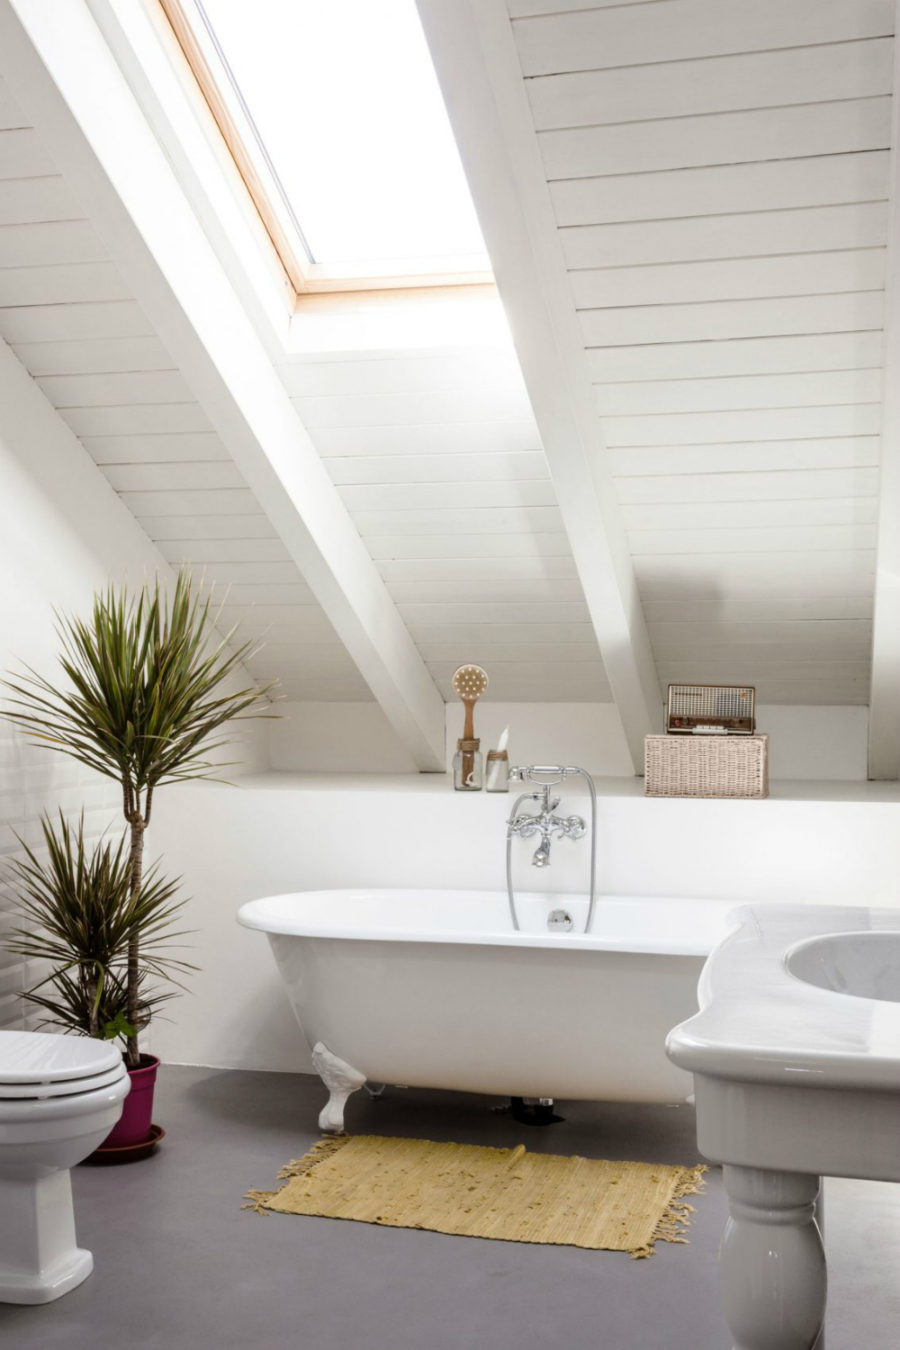 Bathroom with a skylight